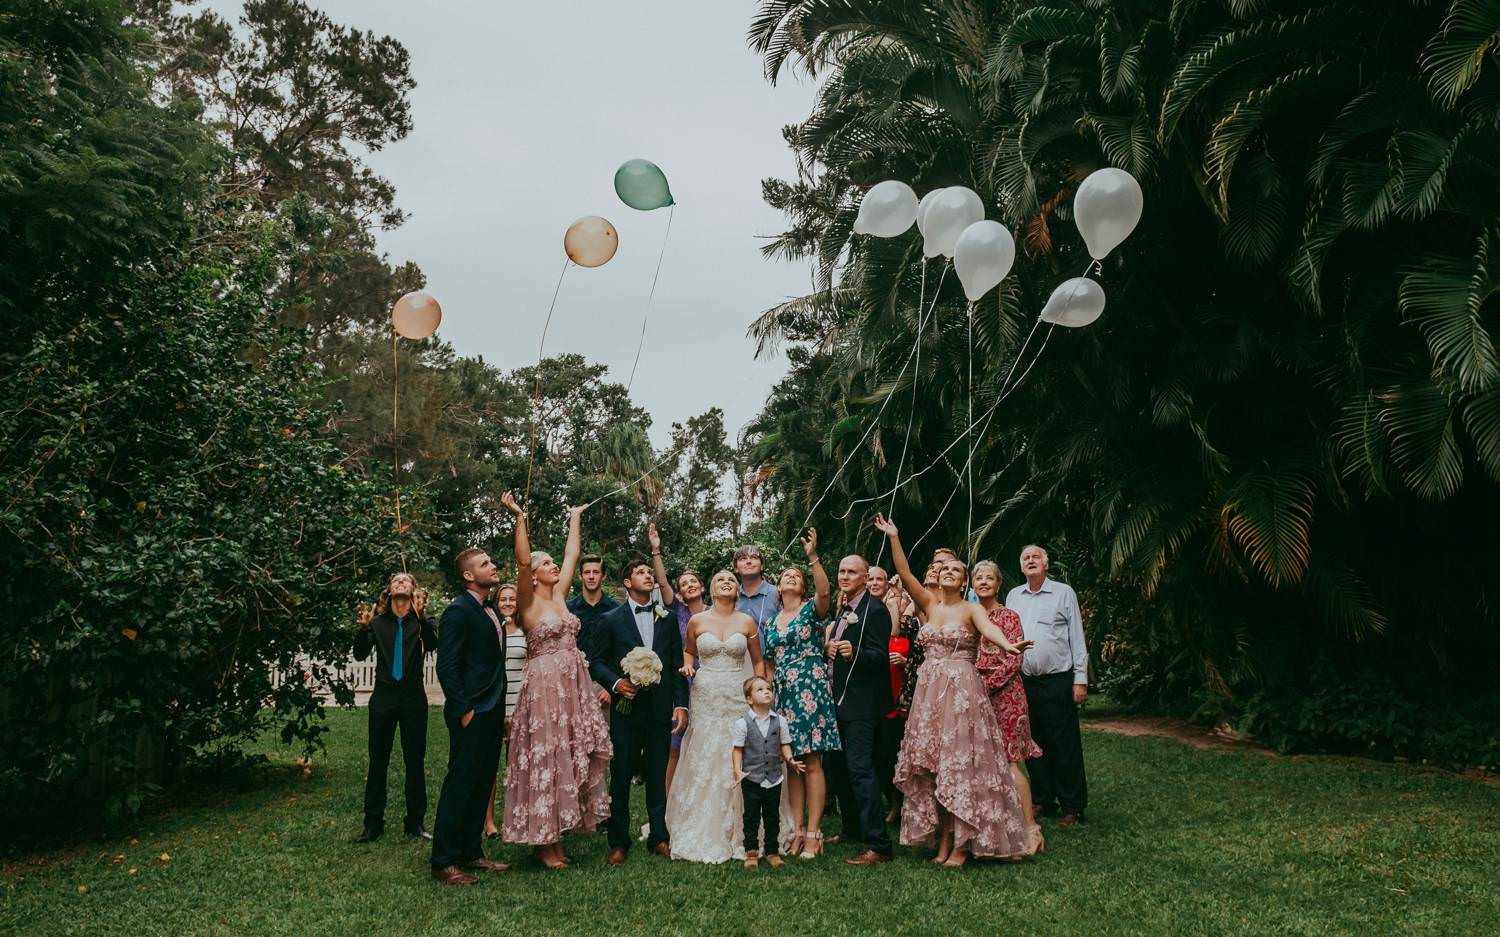 Wedding guests releasing balloons